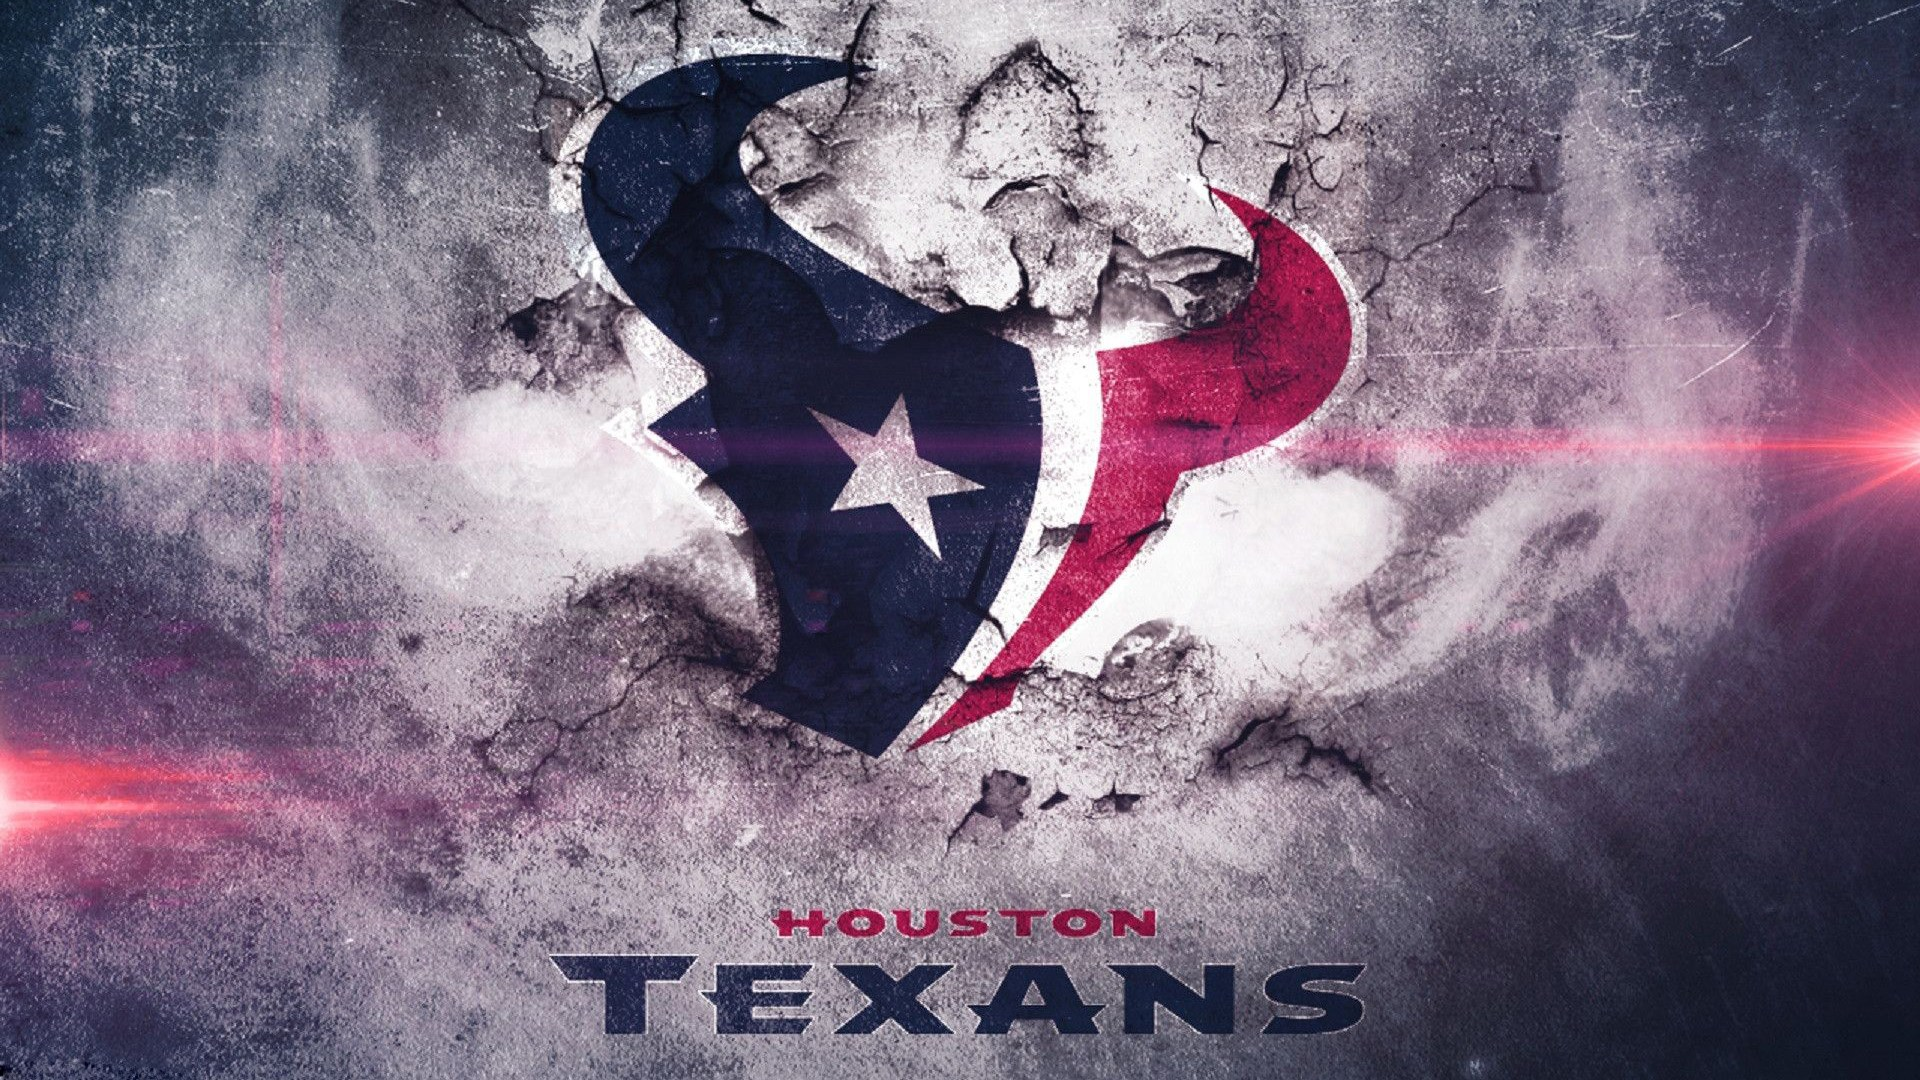 Amazing-texans-picture-Coburn-Round-1920x1080-wallpaper-wp3602408